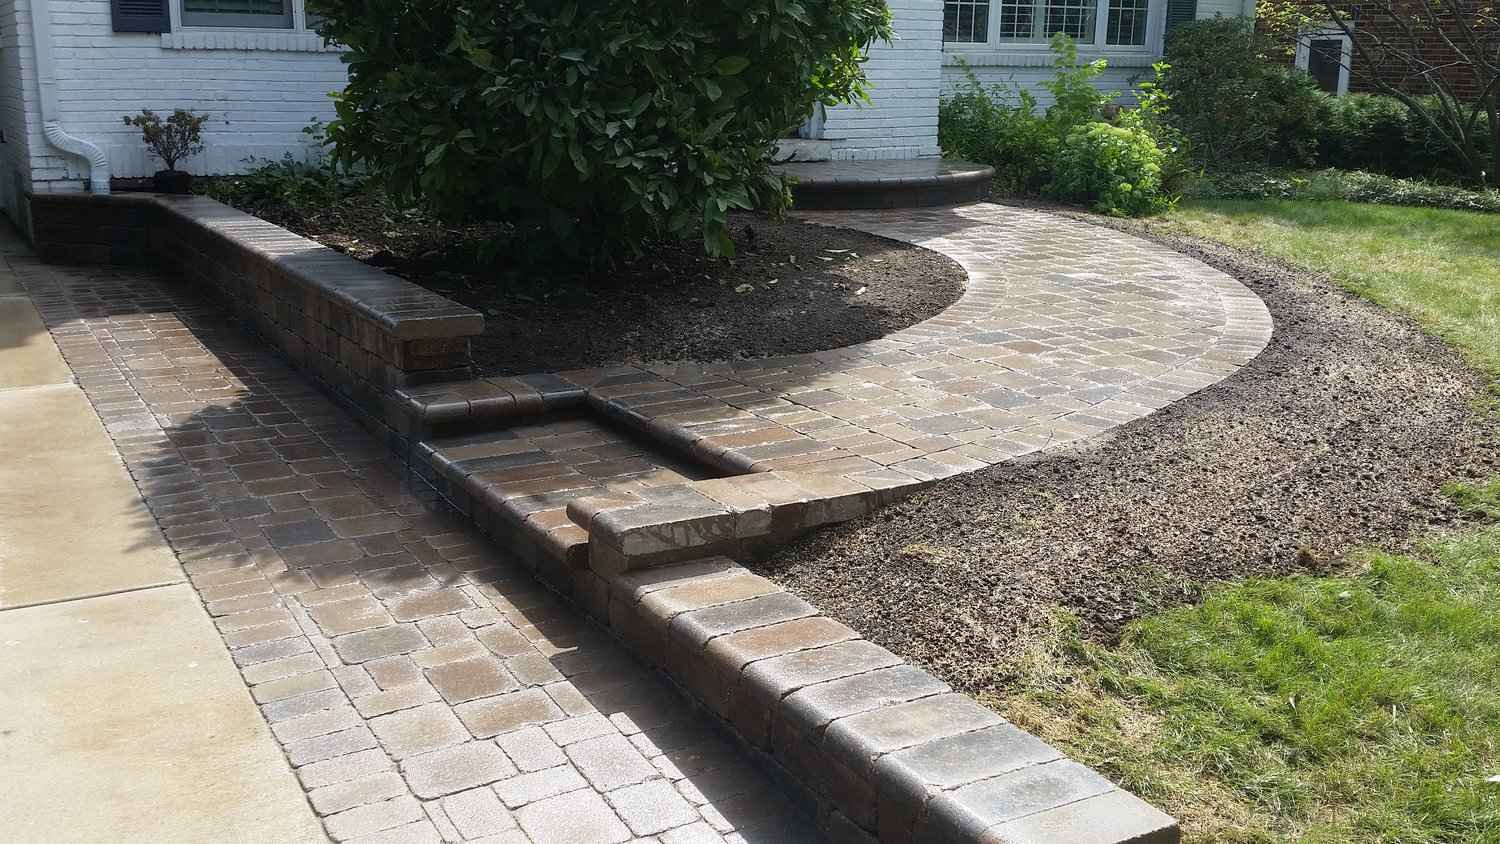 Arlington-Fort Worth TX Landscape Designs & Outdoor Living Areas-We offer Landscape Design, Outdoor Patios & Pergolas, Outdoor Living Spaces, Stonescapes, Residential & Commercial Landscaping, Irrigation Installation & Repairs, Drainage Systems, Landscape Lighting, Outdoor Living Spaces, Tree Service, Lawn Service, and more.